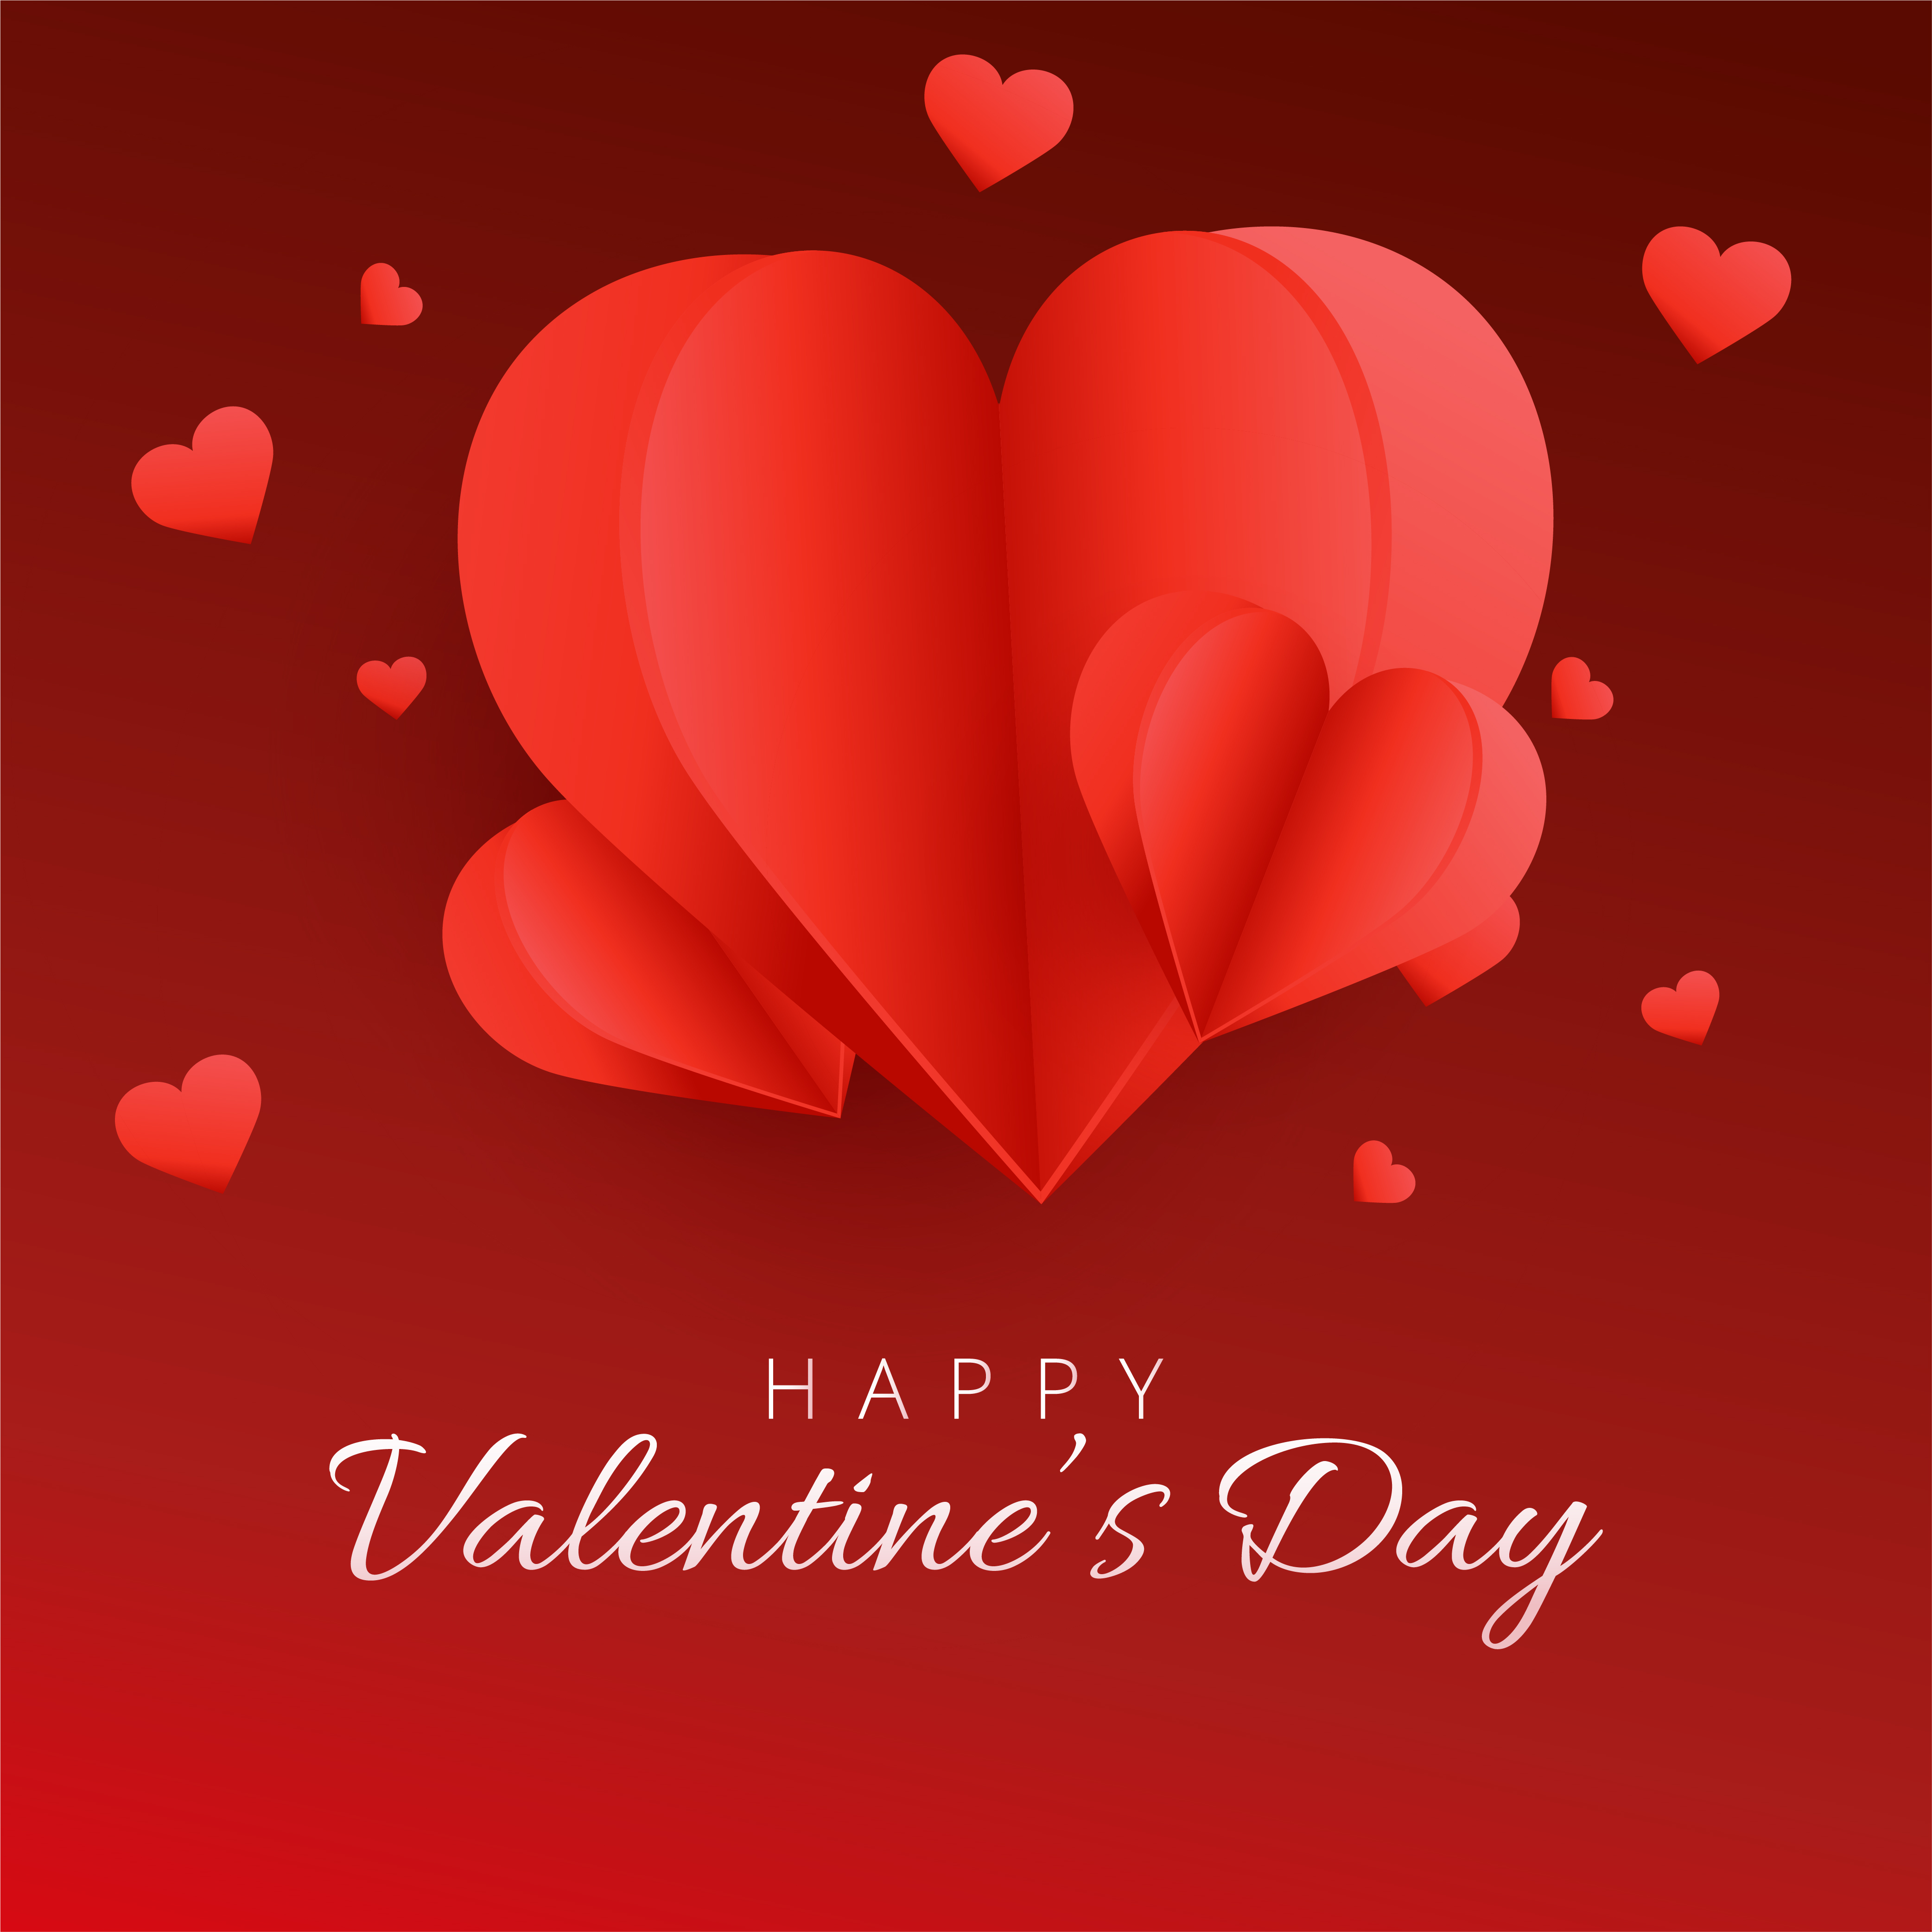 Happy Valentine S Day Card In Paper Art Style Download Free Vectors Clipart Graphics Vector Art